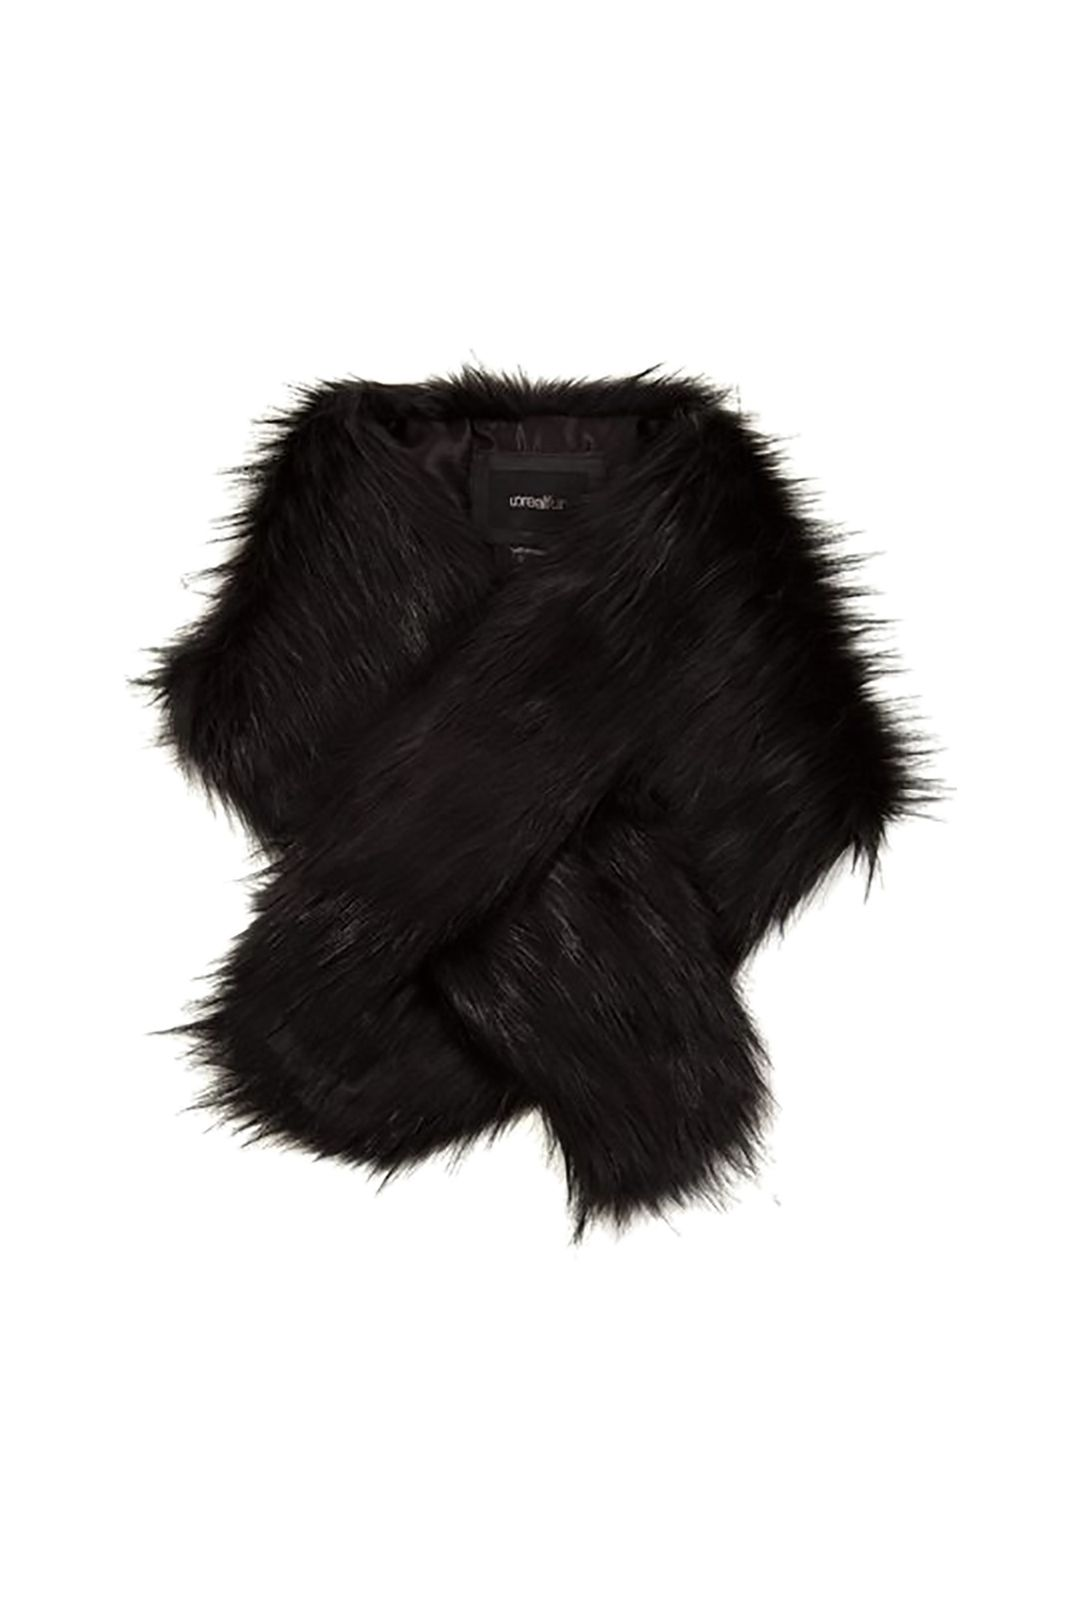 Unreal Fur - Furocious Thread - Black - Front